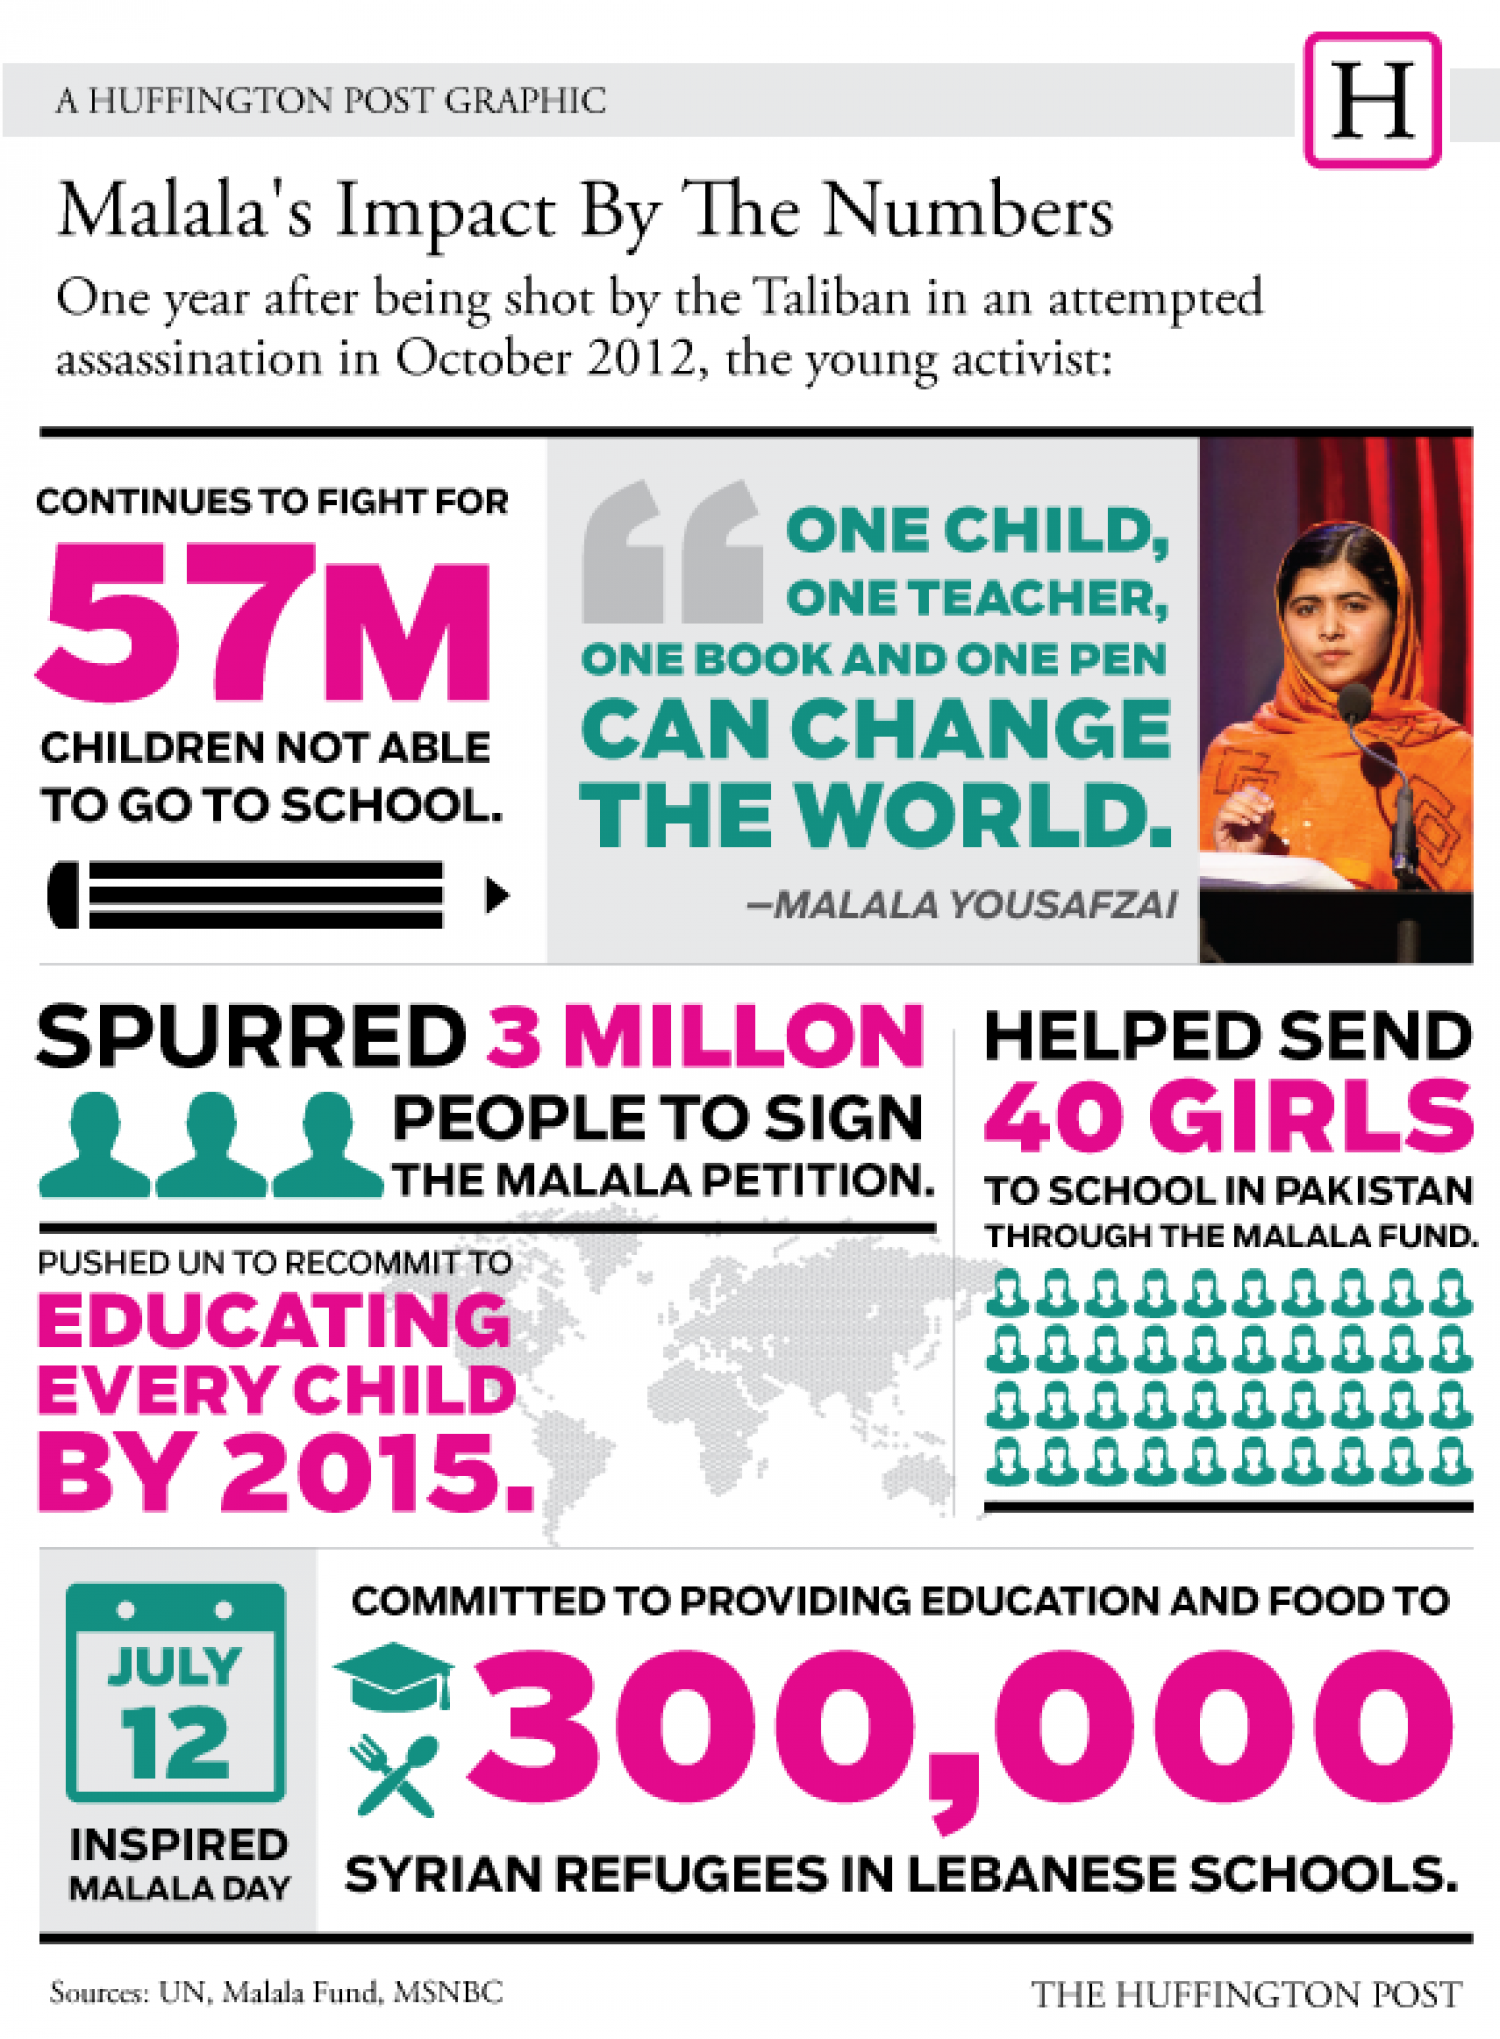 Malala's Impact By The Numbers Infographic